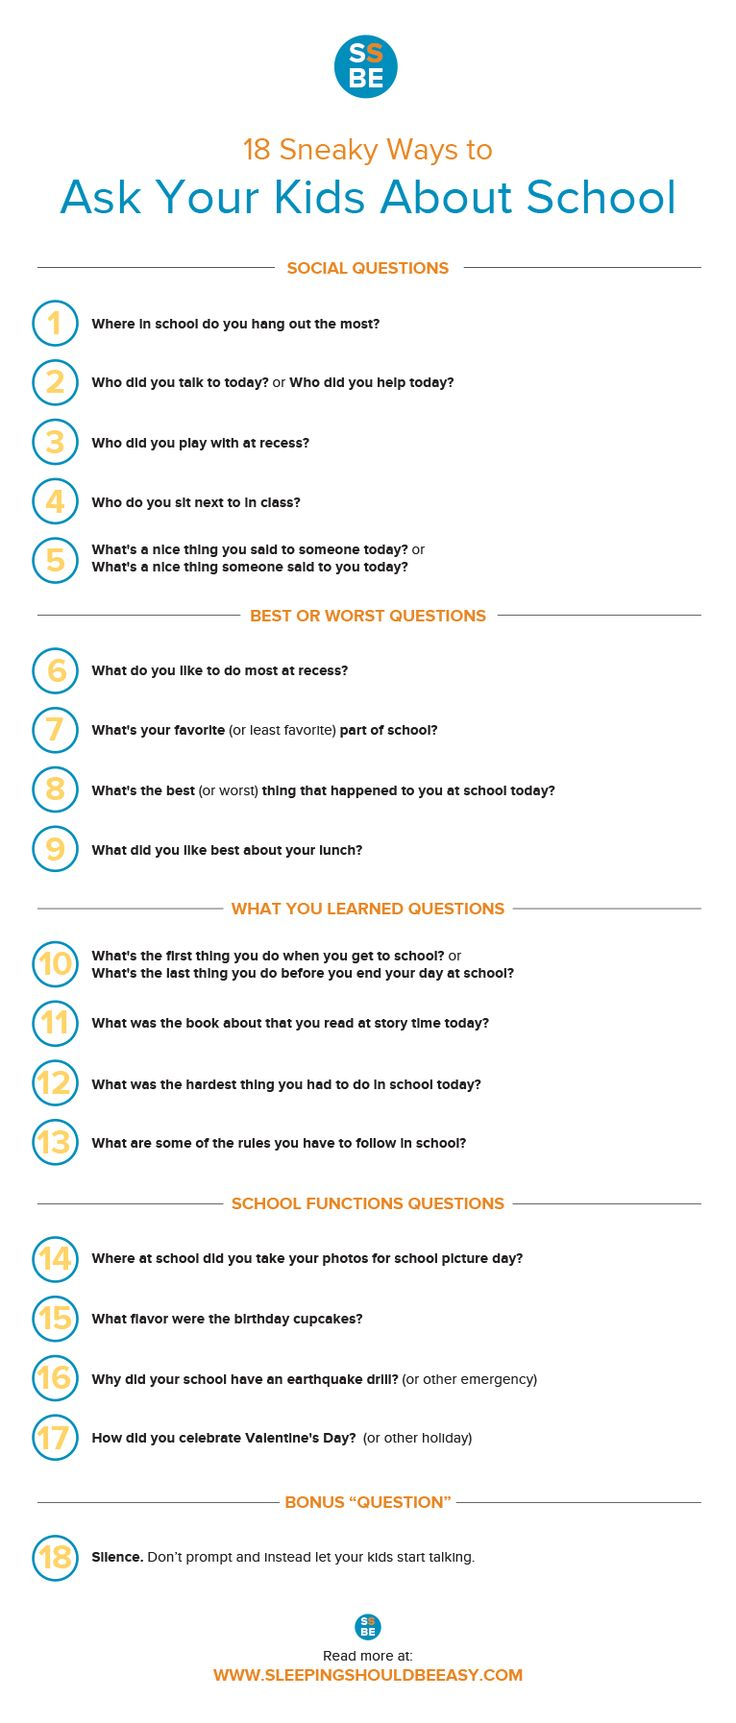 Parents, are you met with silence when you ask your children about school? Check out these 18 sneaky ways to get your kids